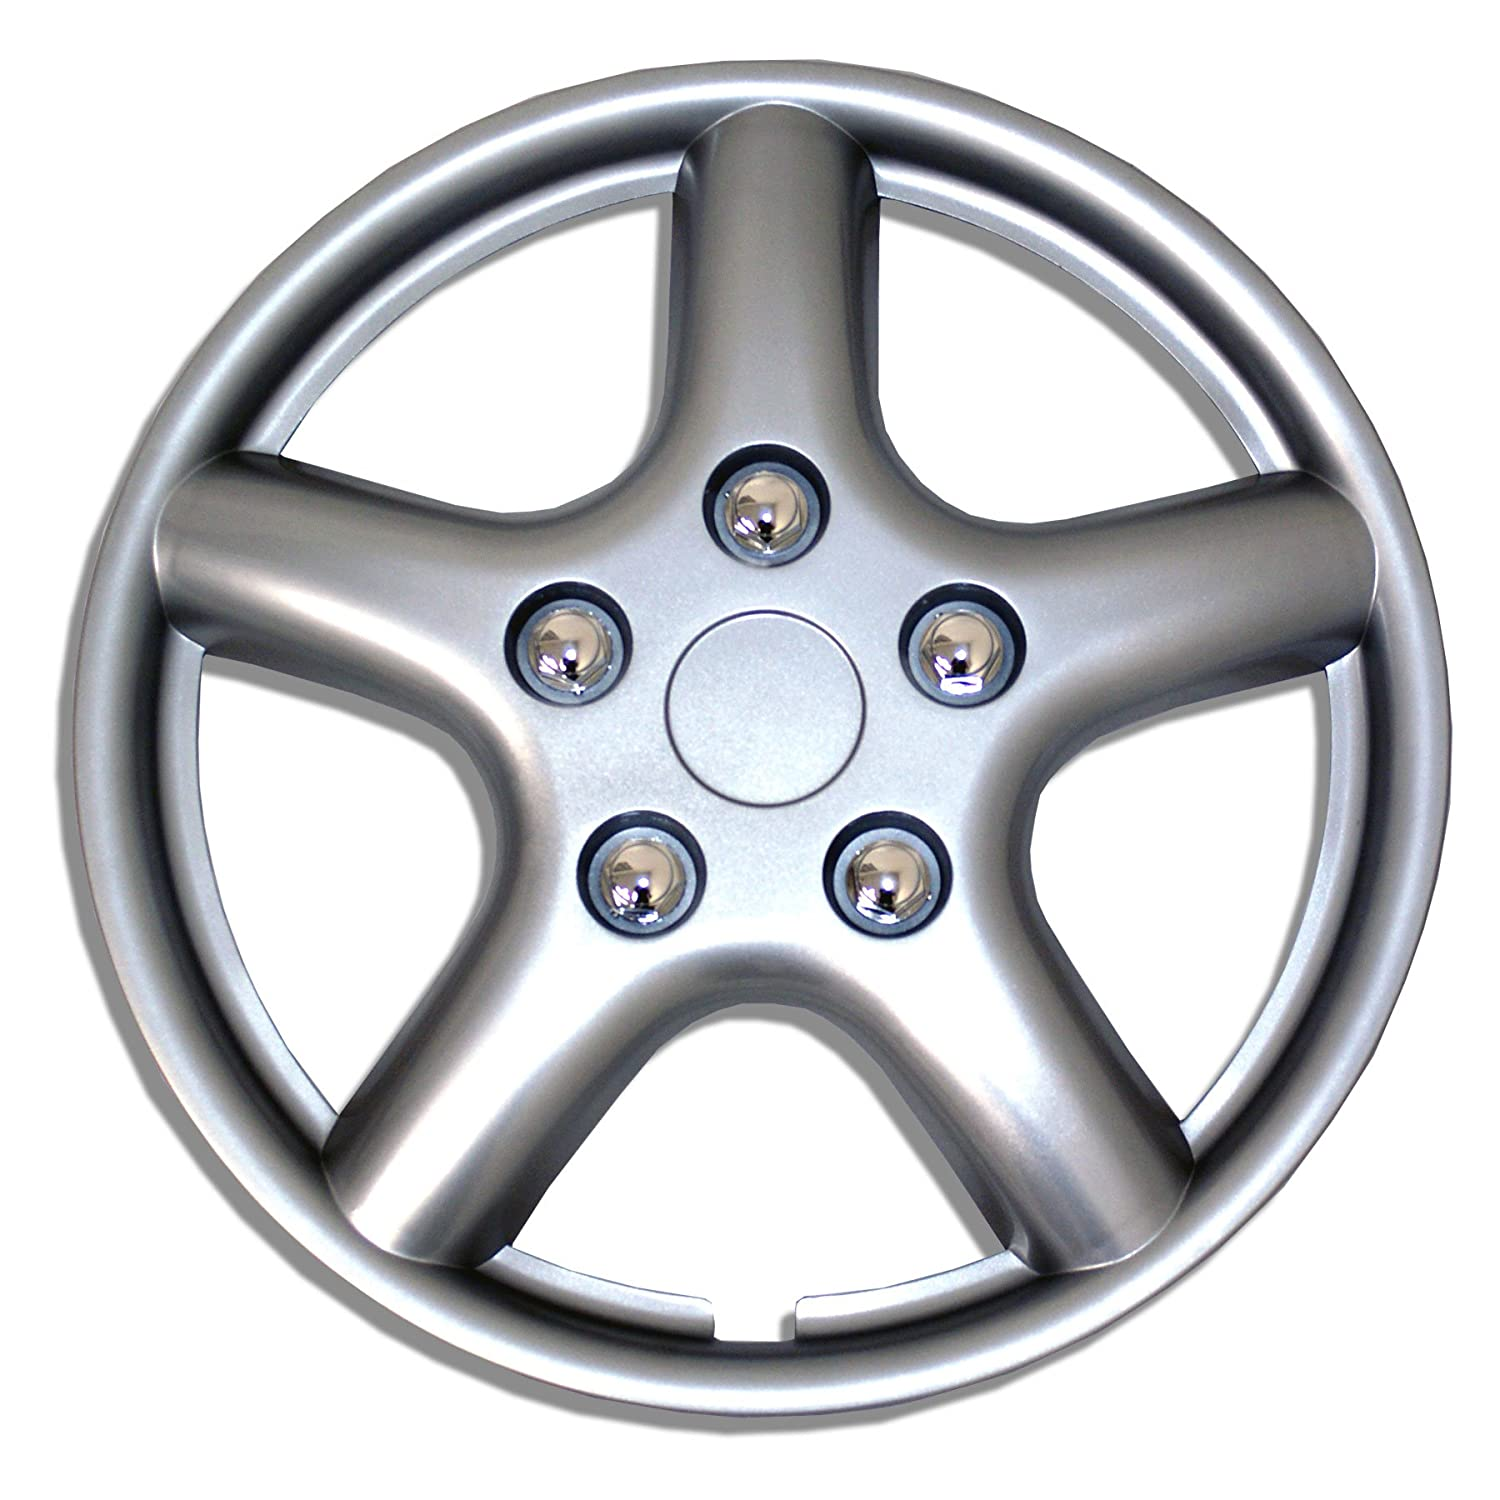 Drive Accessories KT-997-15S//L Toyota Sienna Set of 4 15 Silver Replica Wheel Cover,